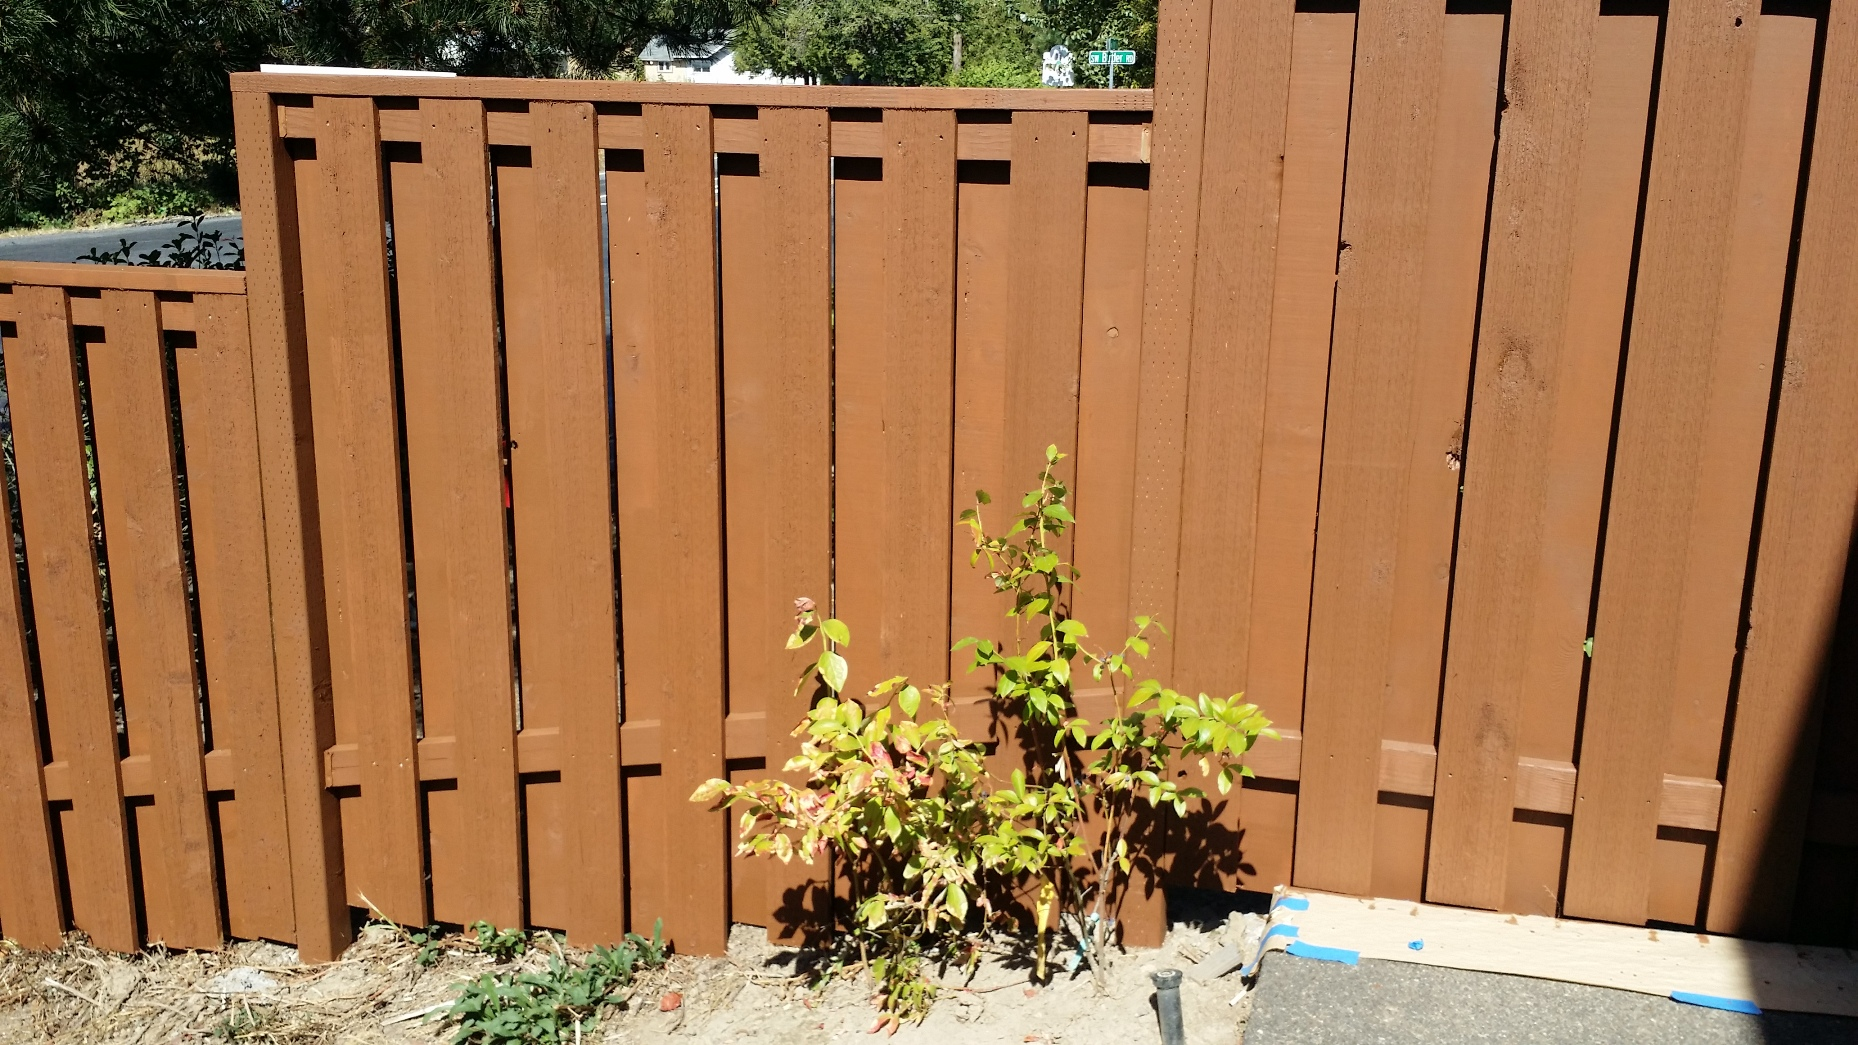 Virginia Beach fence repair quote, Virginia Beach fence contractor, Virginia Beach fencing company, Fence Repair Virginia Beach, Virginia Beach fencing repair